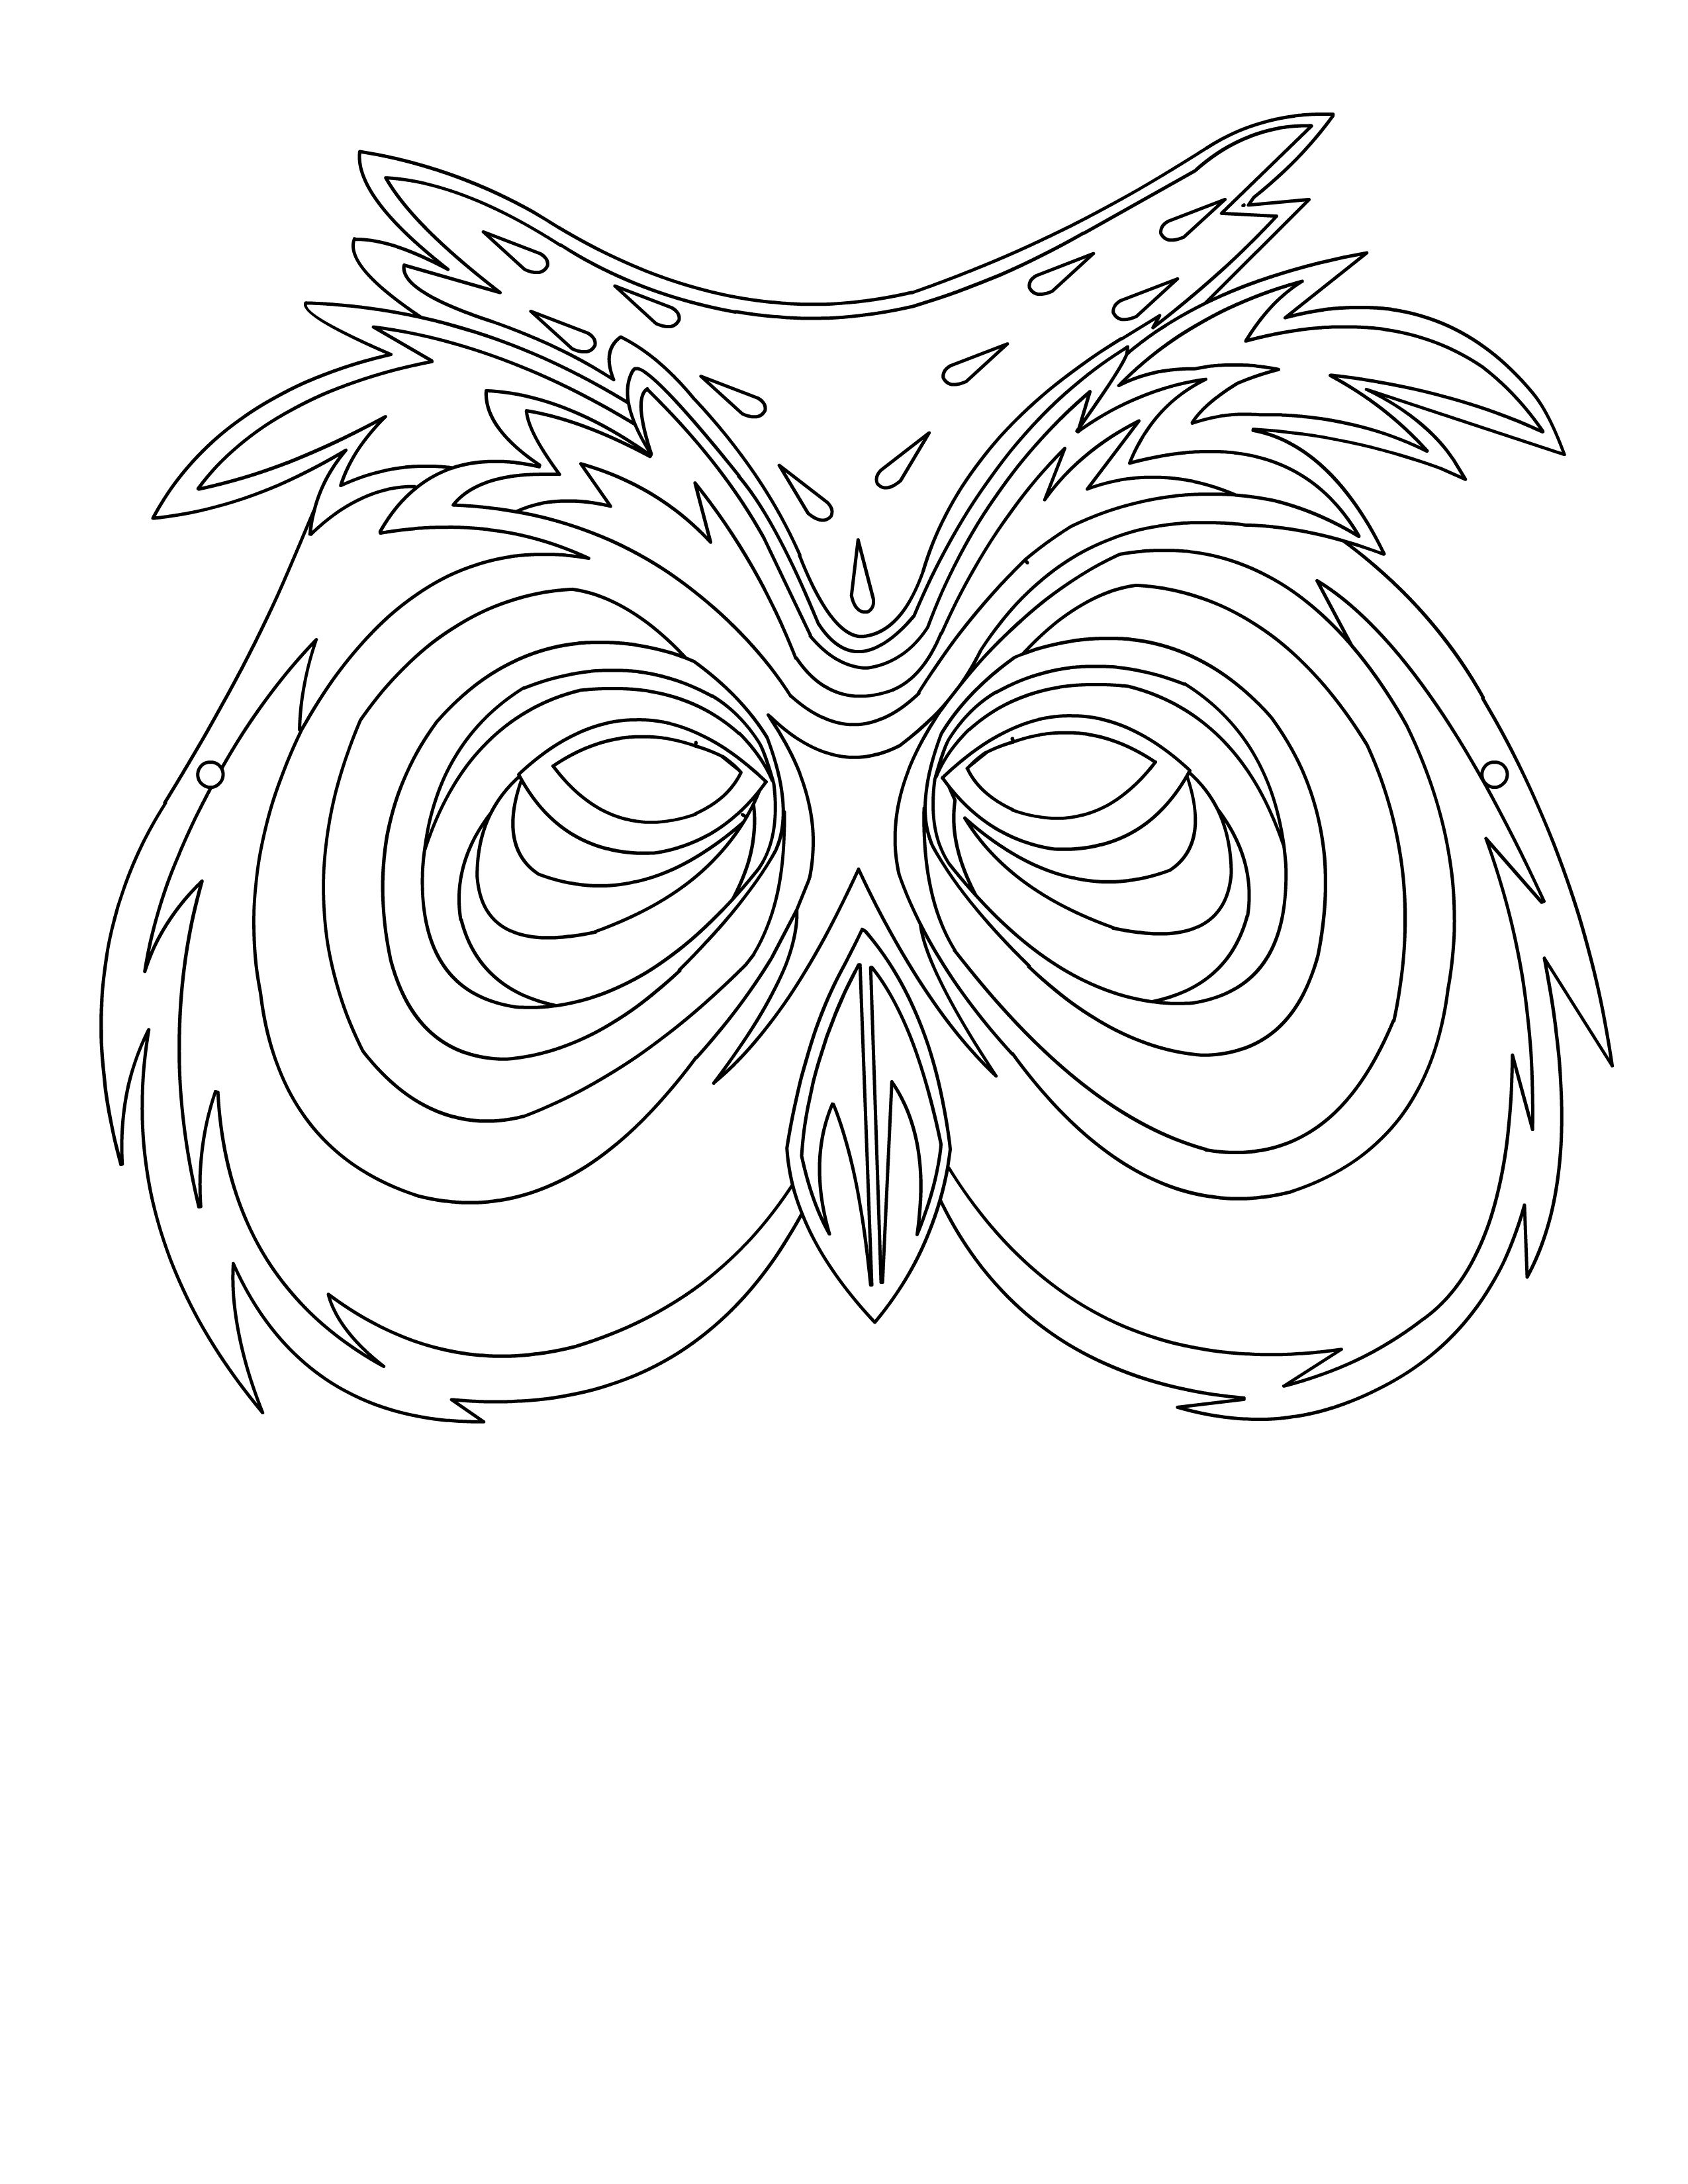 Pin By Luke On Ident Owl Masks Research With Images